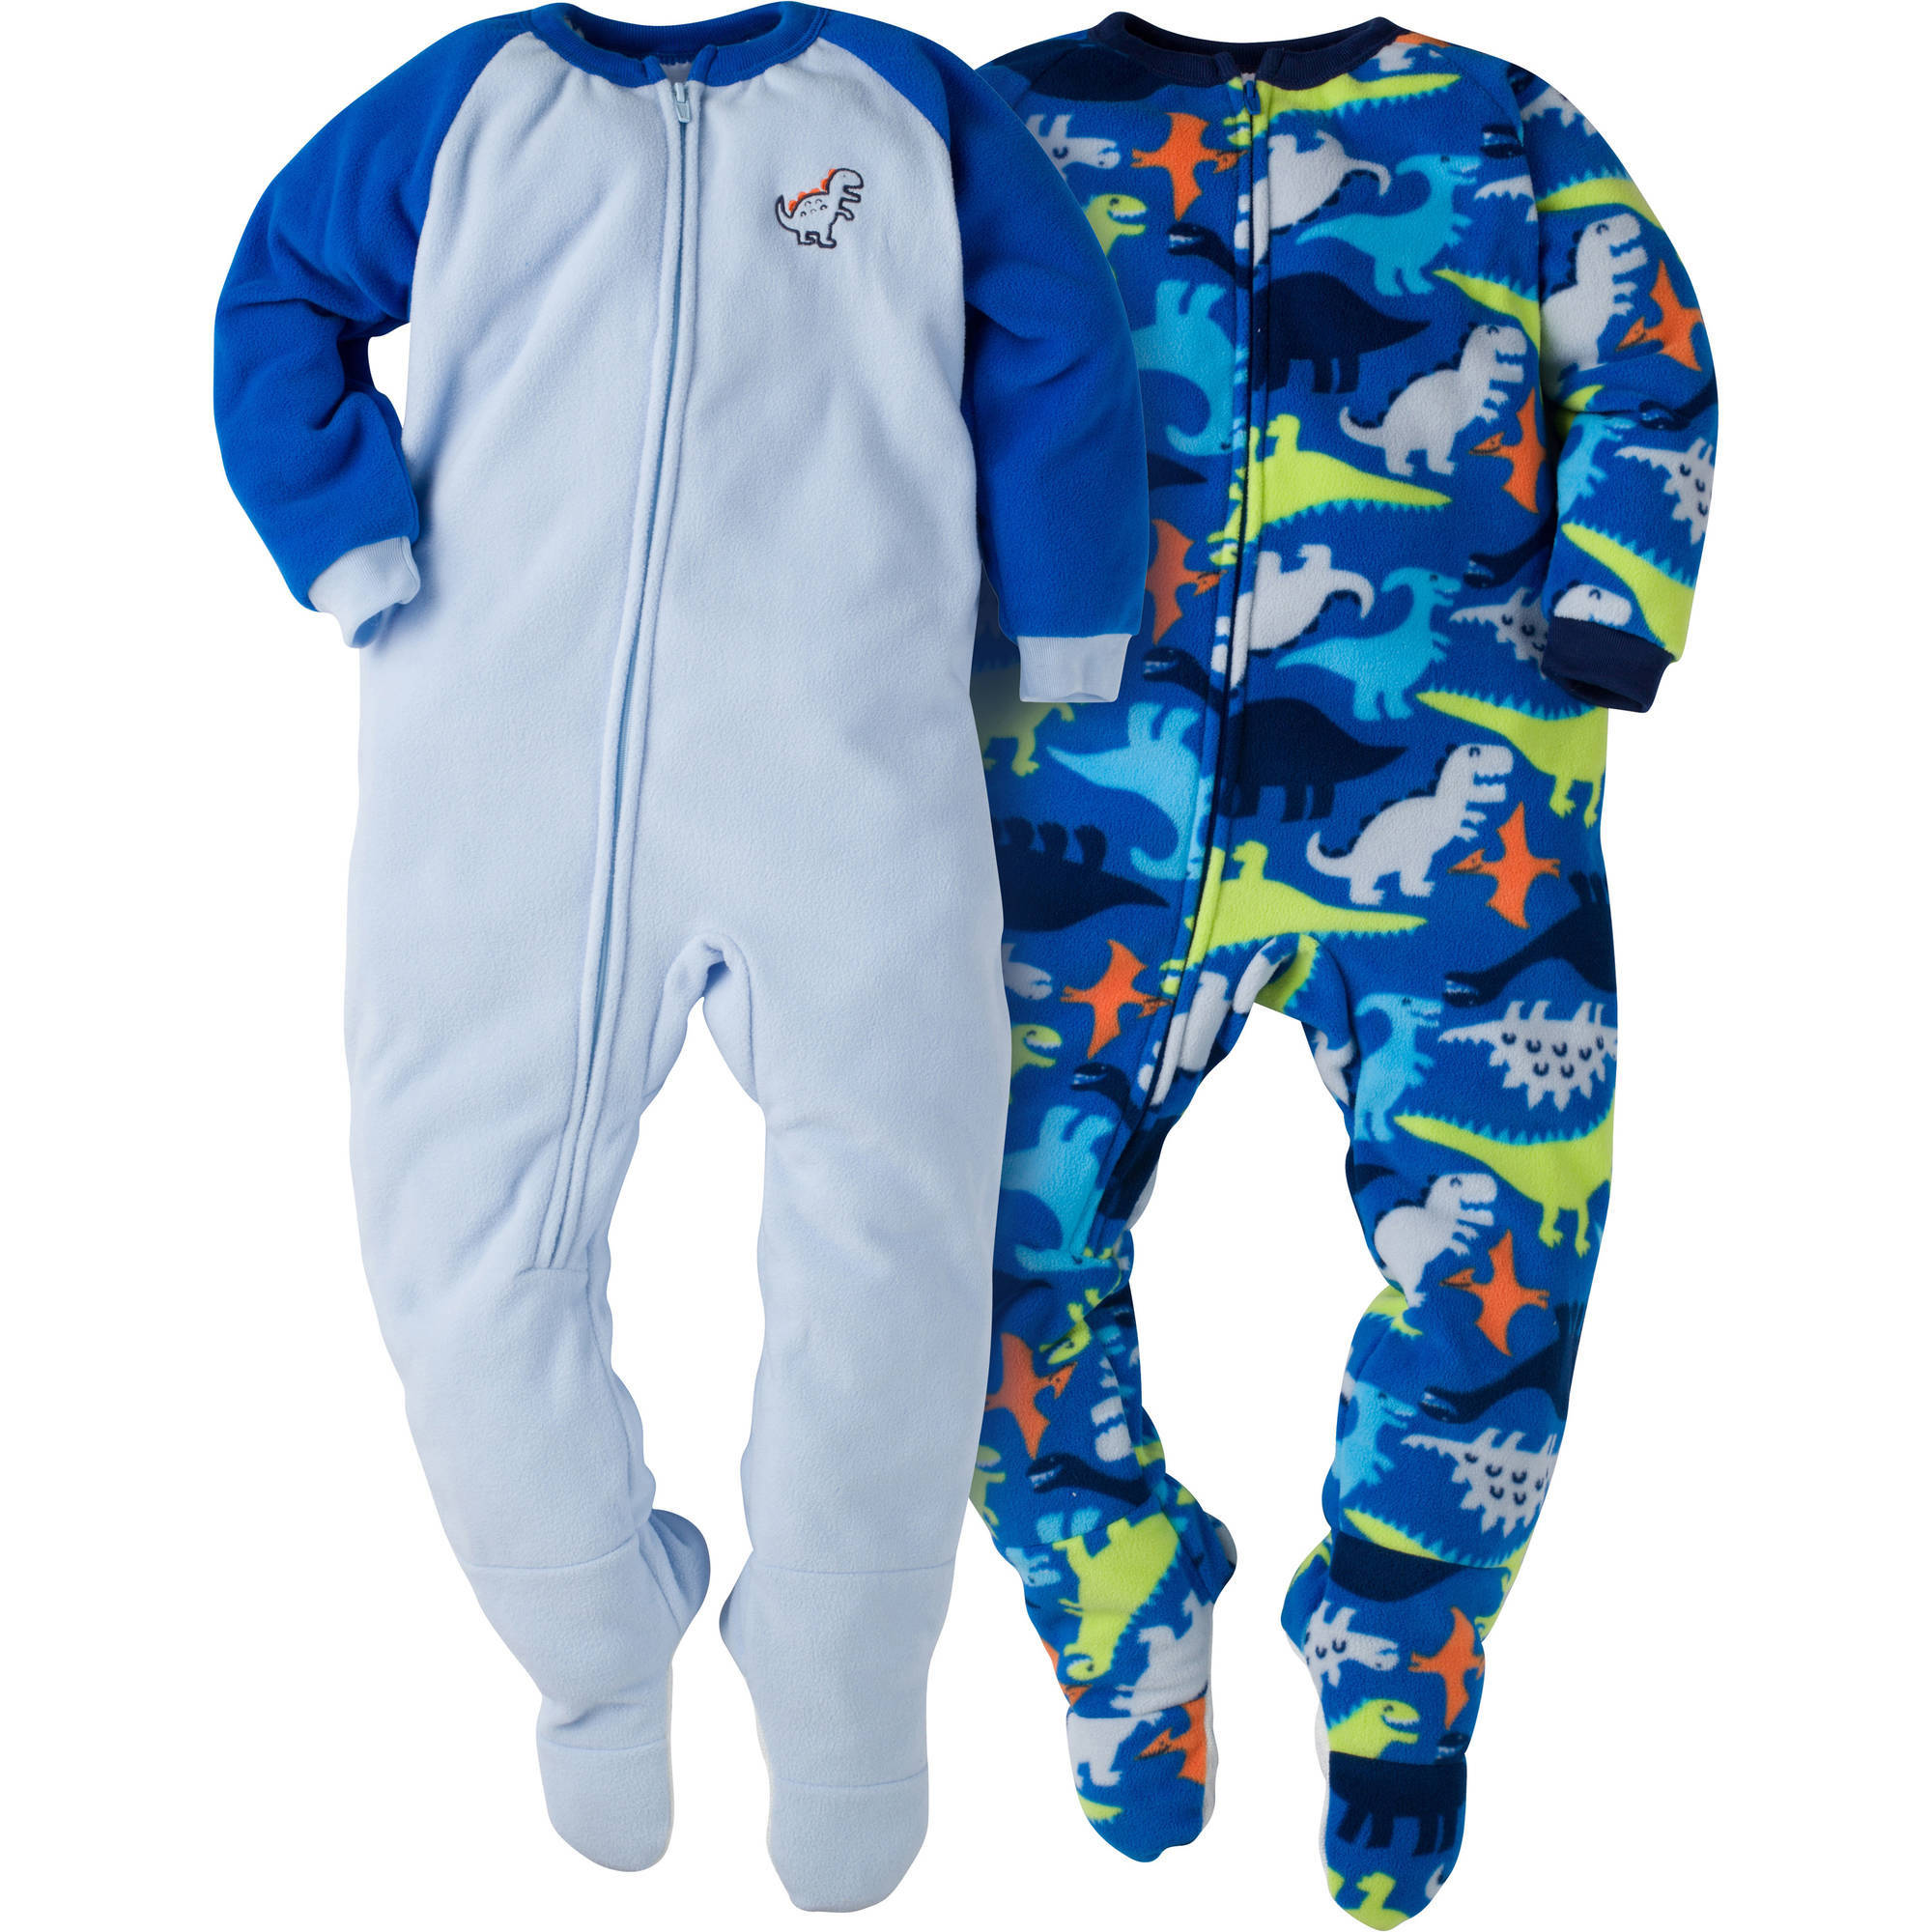 Gerber Toddler Boy Blanket Sleeper, 2-pack